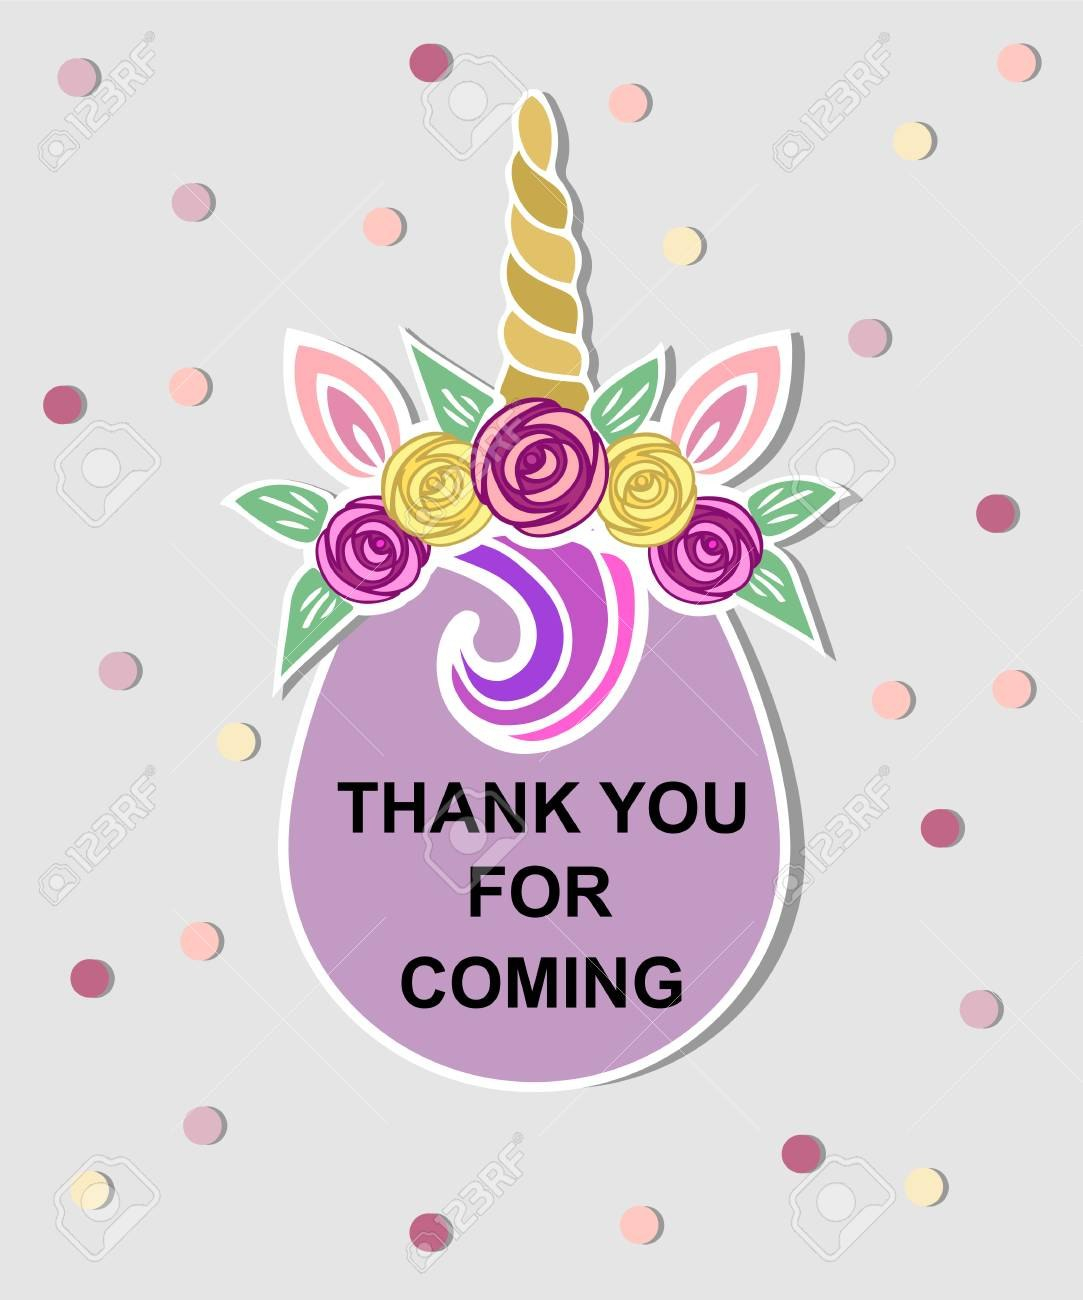 Template With Unicorn Tiara For Party Invitation Baby Shower Regarding Thank You Card Template For Baby Shower